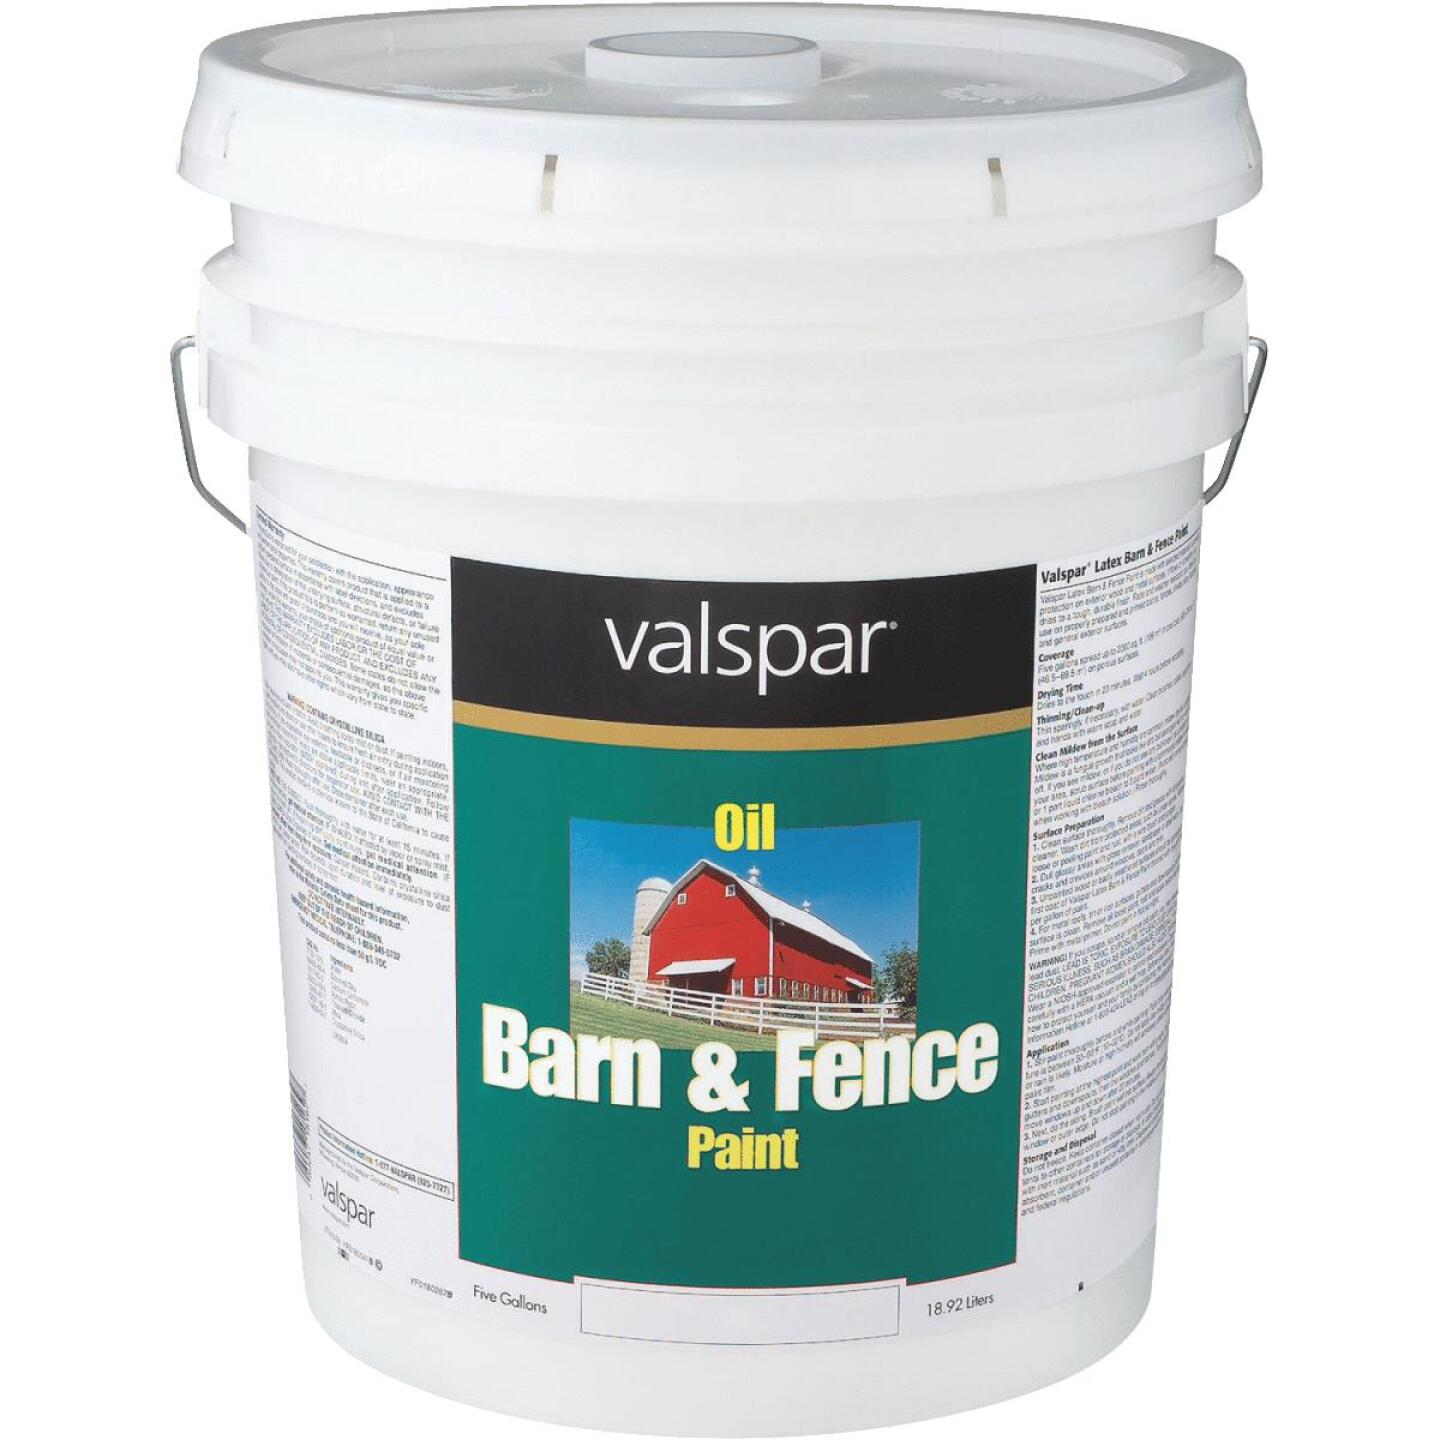 Valspar Oil Paint & Primer In One Low Sheen Barn & Fence Paint, Red, 5 Gal. Image 1